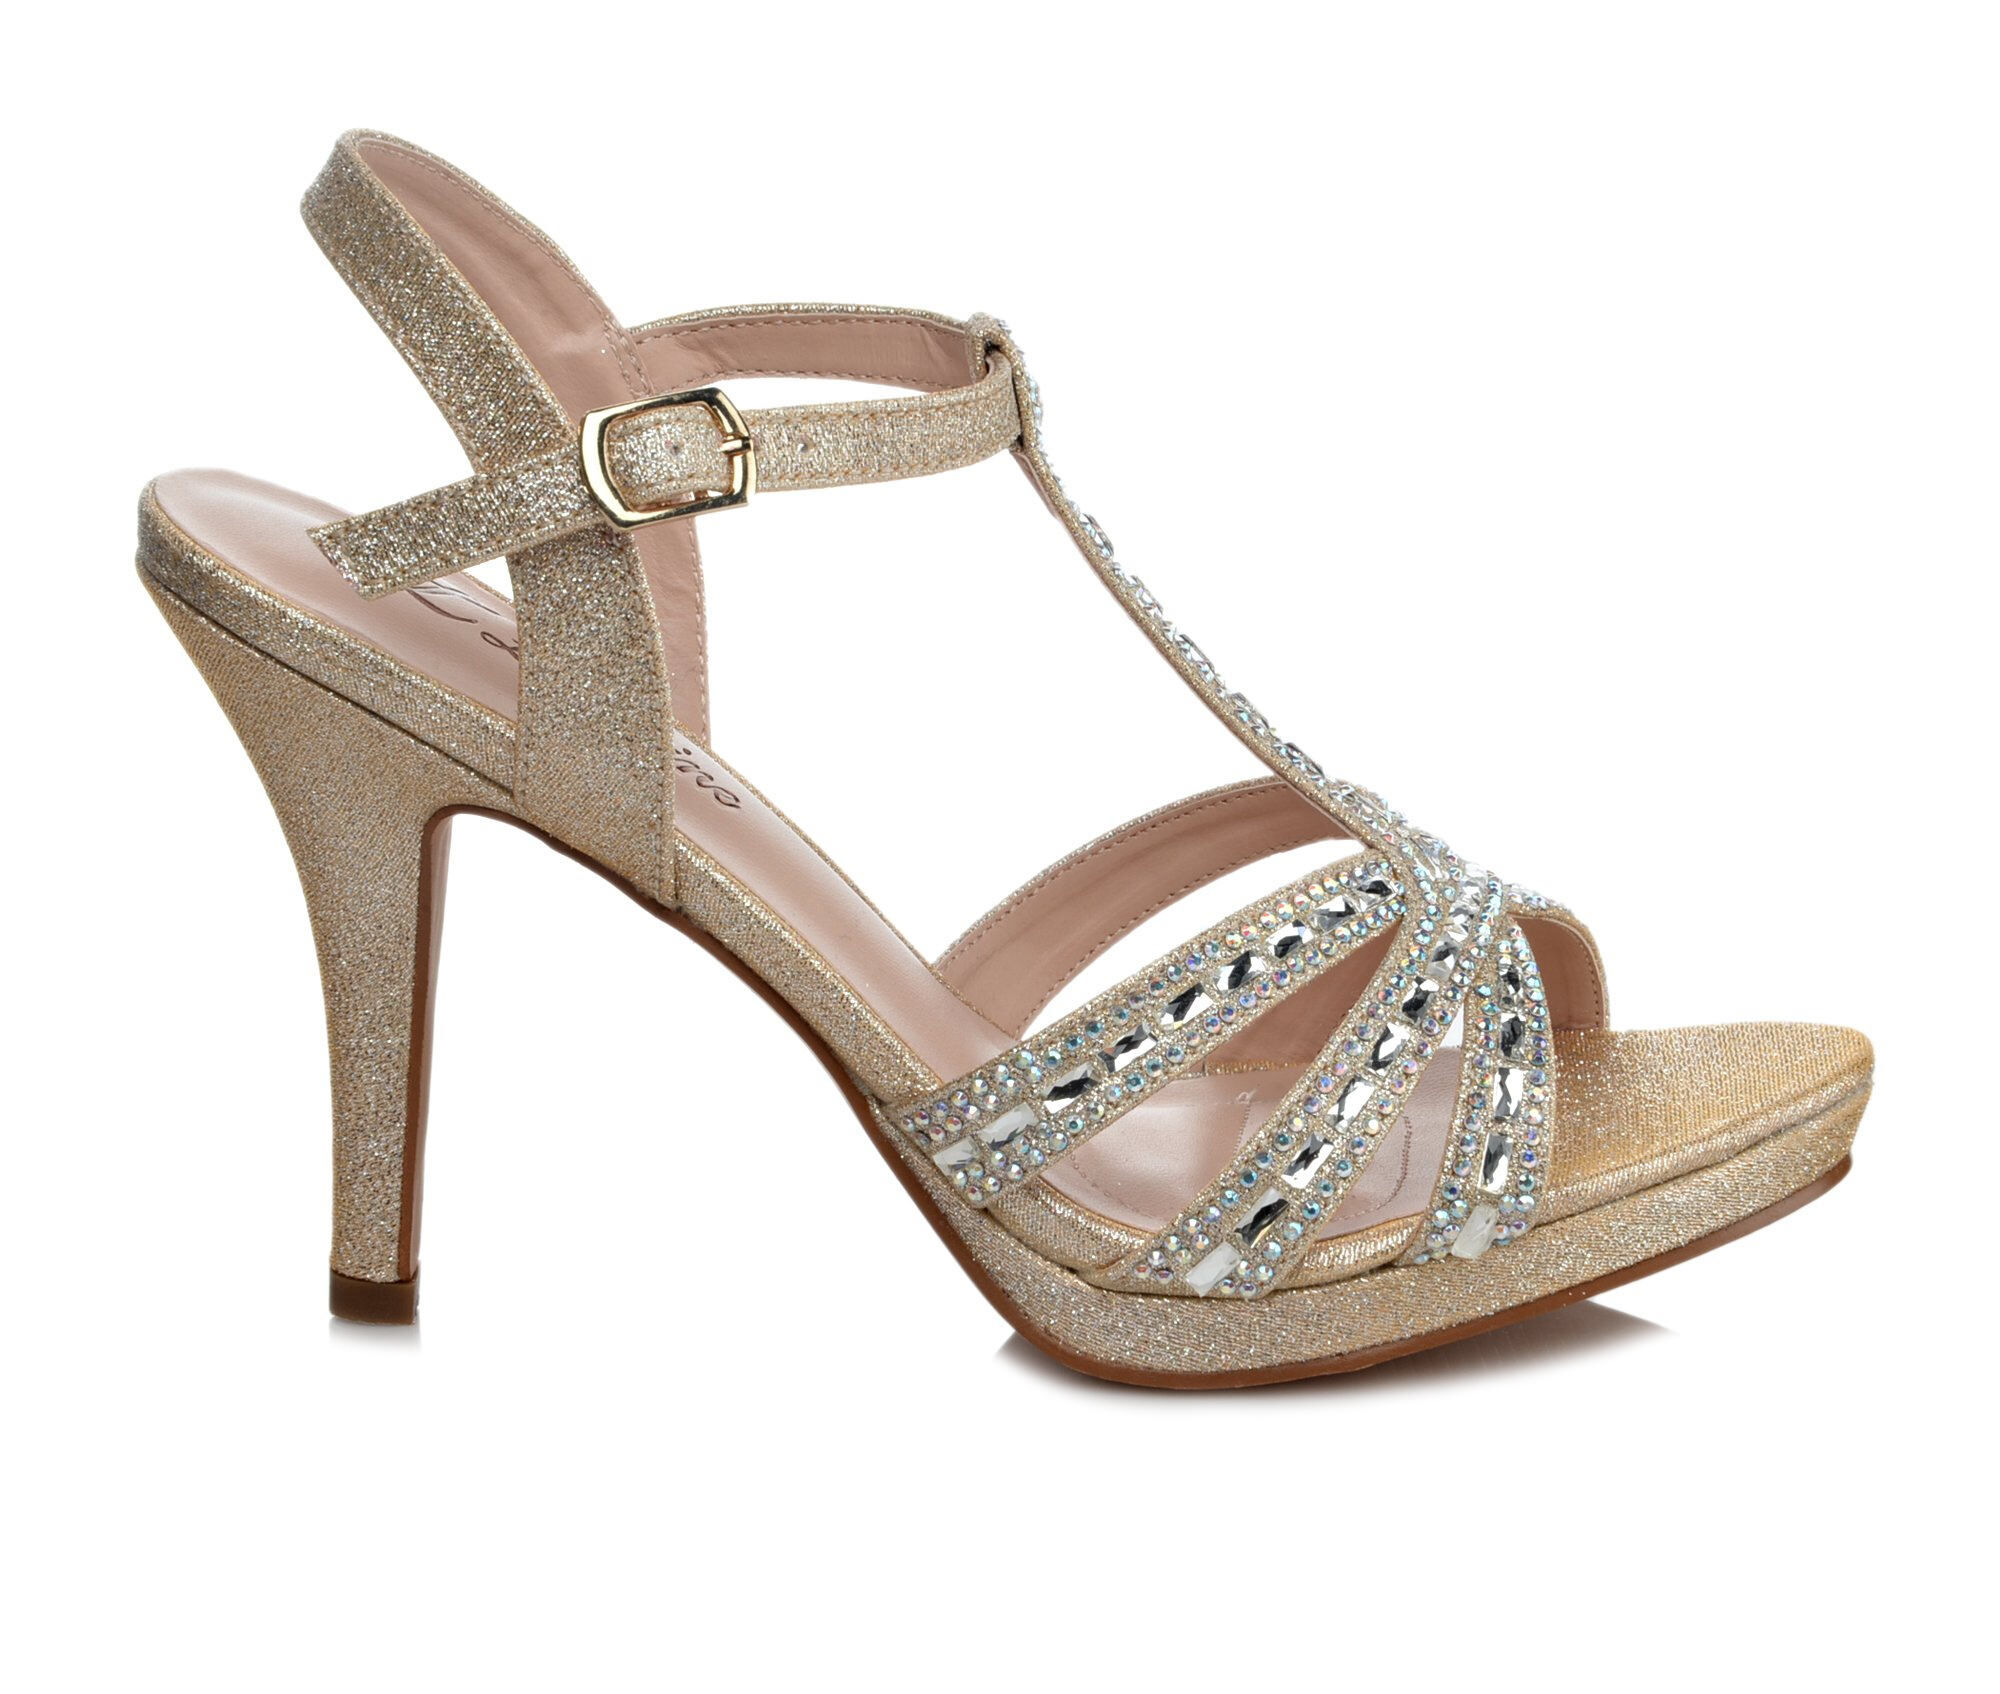 Women's LLorraine Lilly Strappy Heeled Dress Sandals Nude